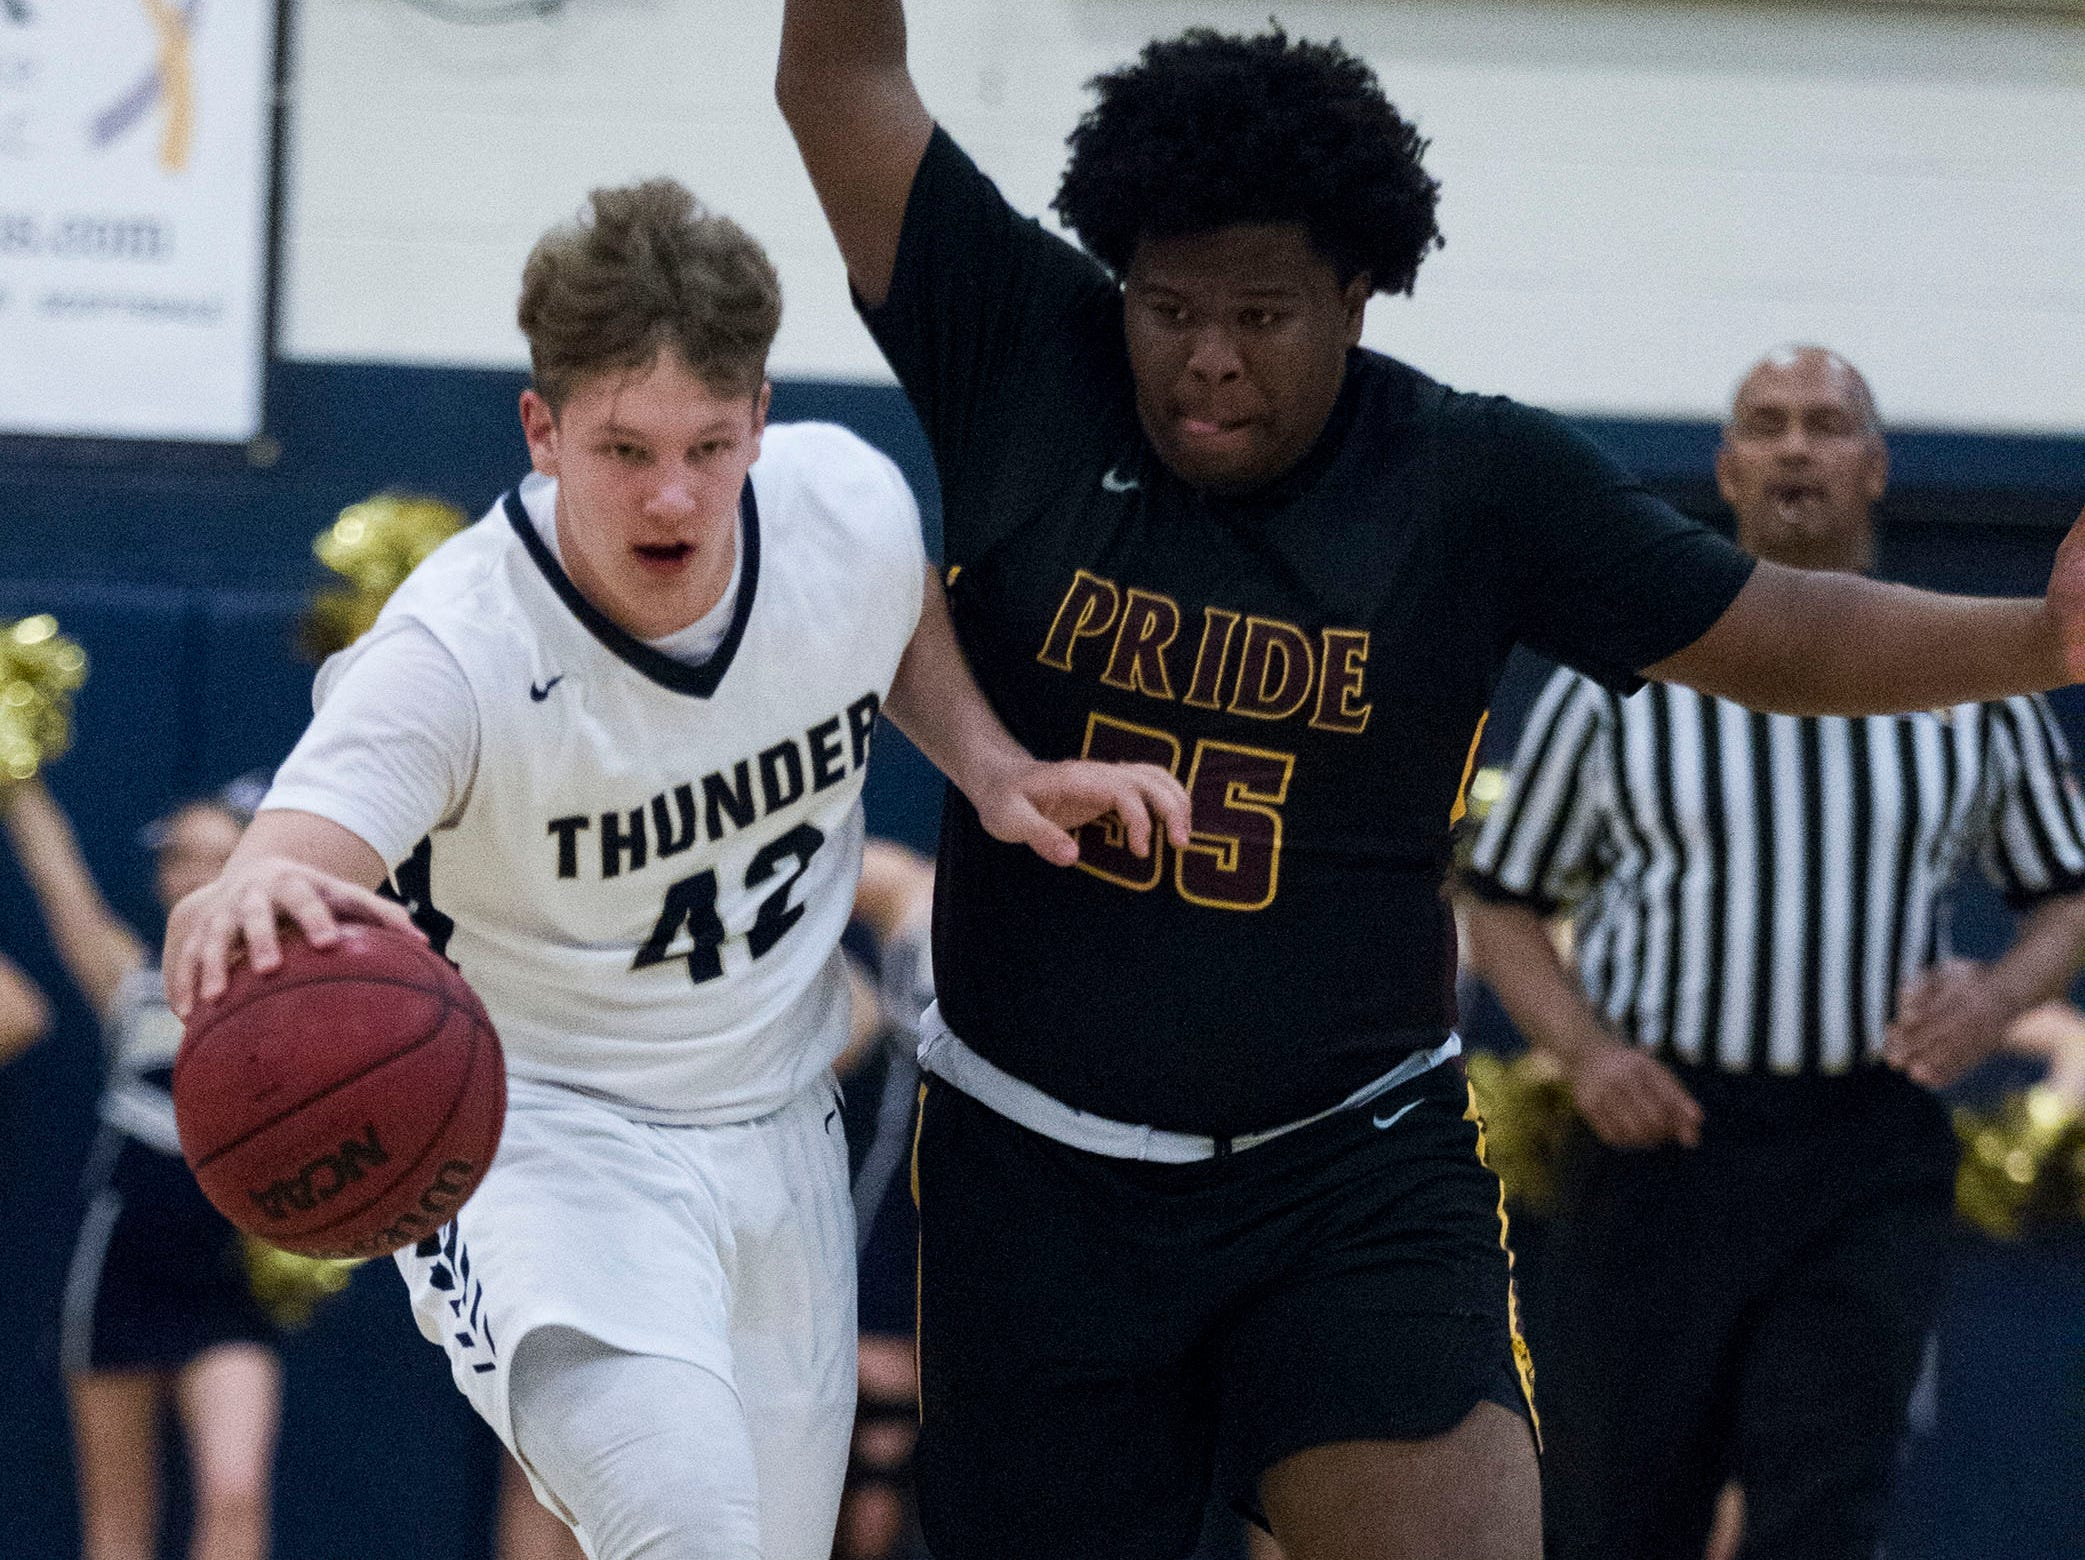 Desert Vista's Hayden Engle (42) gets caught up with Mountain Pointe's Kalil Simmons (35) during in the first half of their game at Desert Vista High School in Phoenix, Friday, Jan.11, 2019.